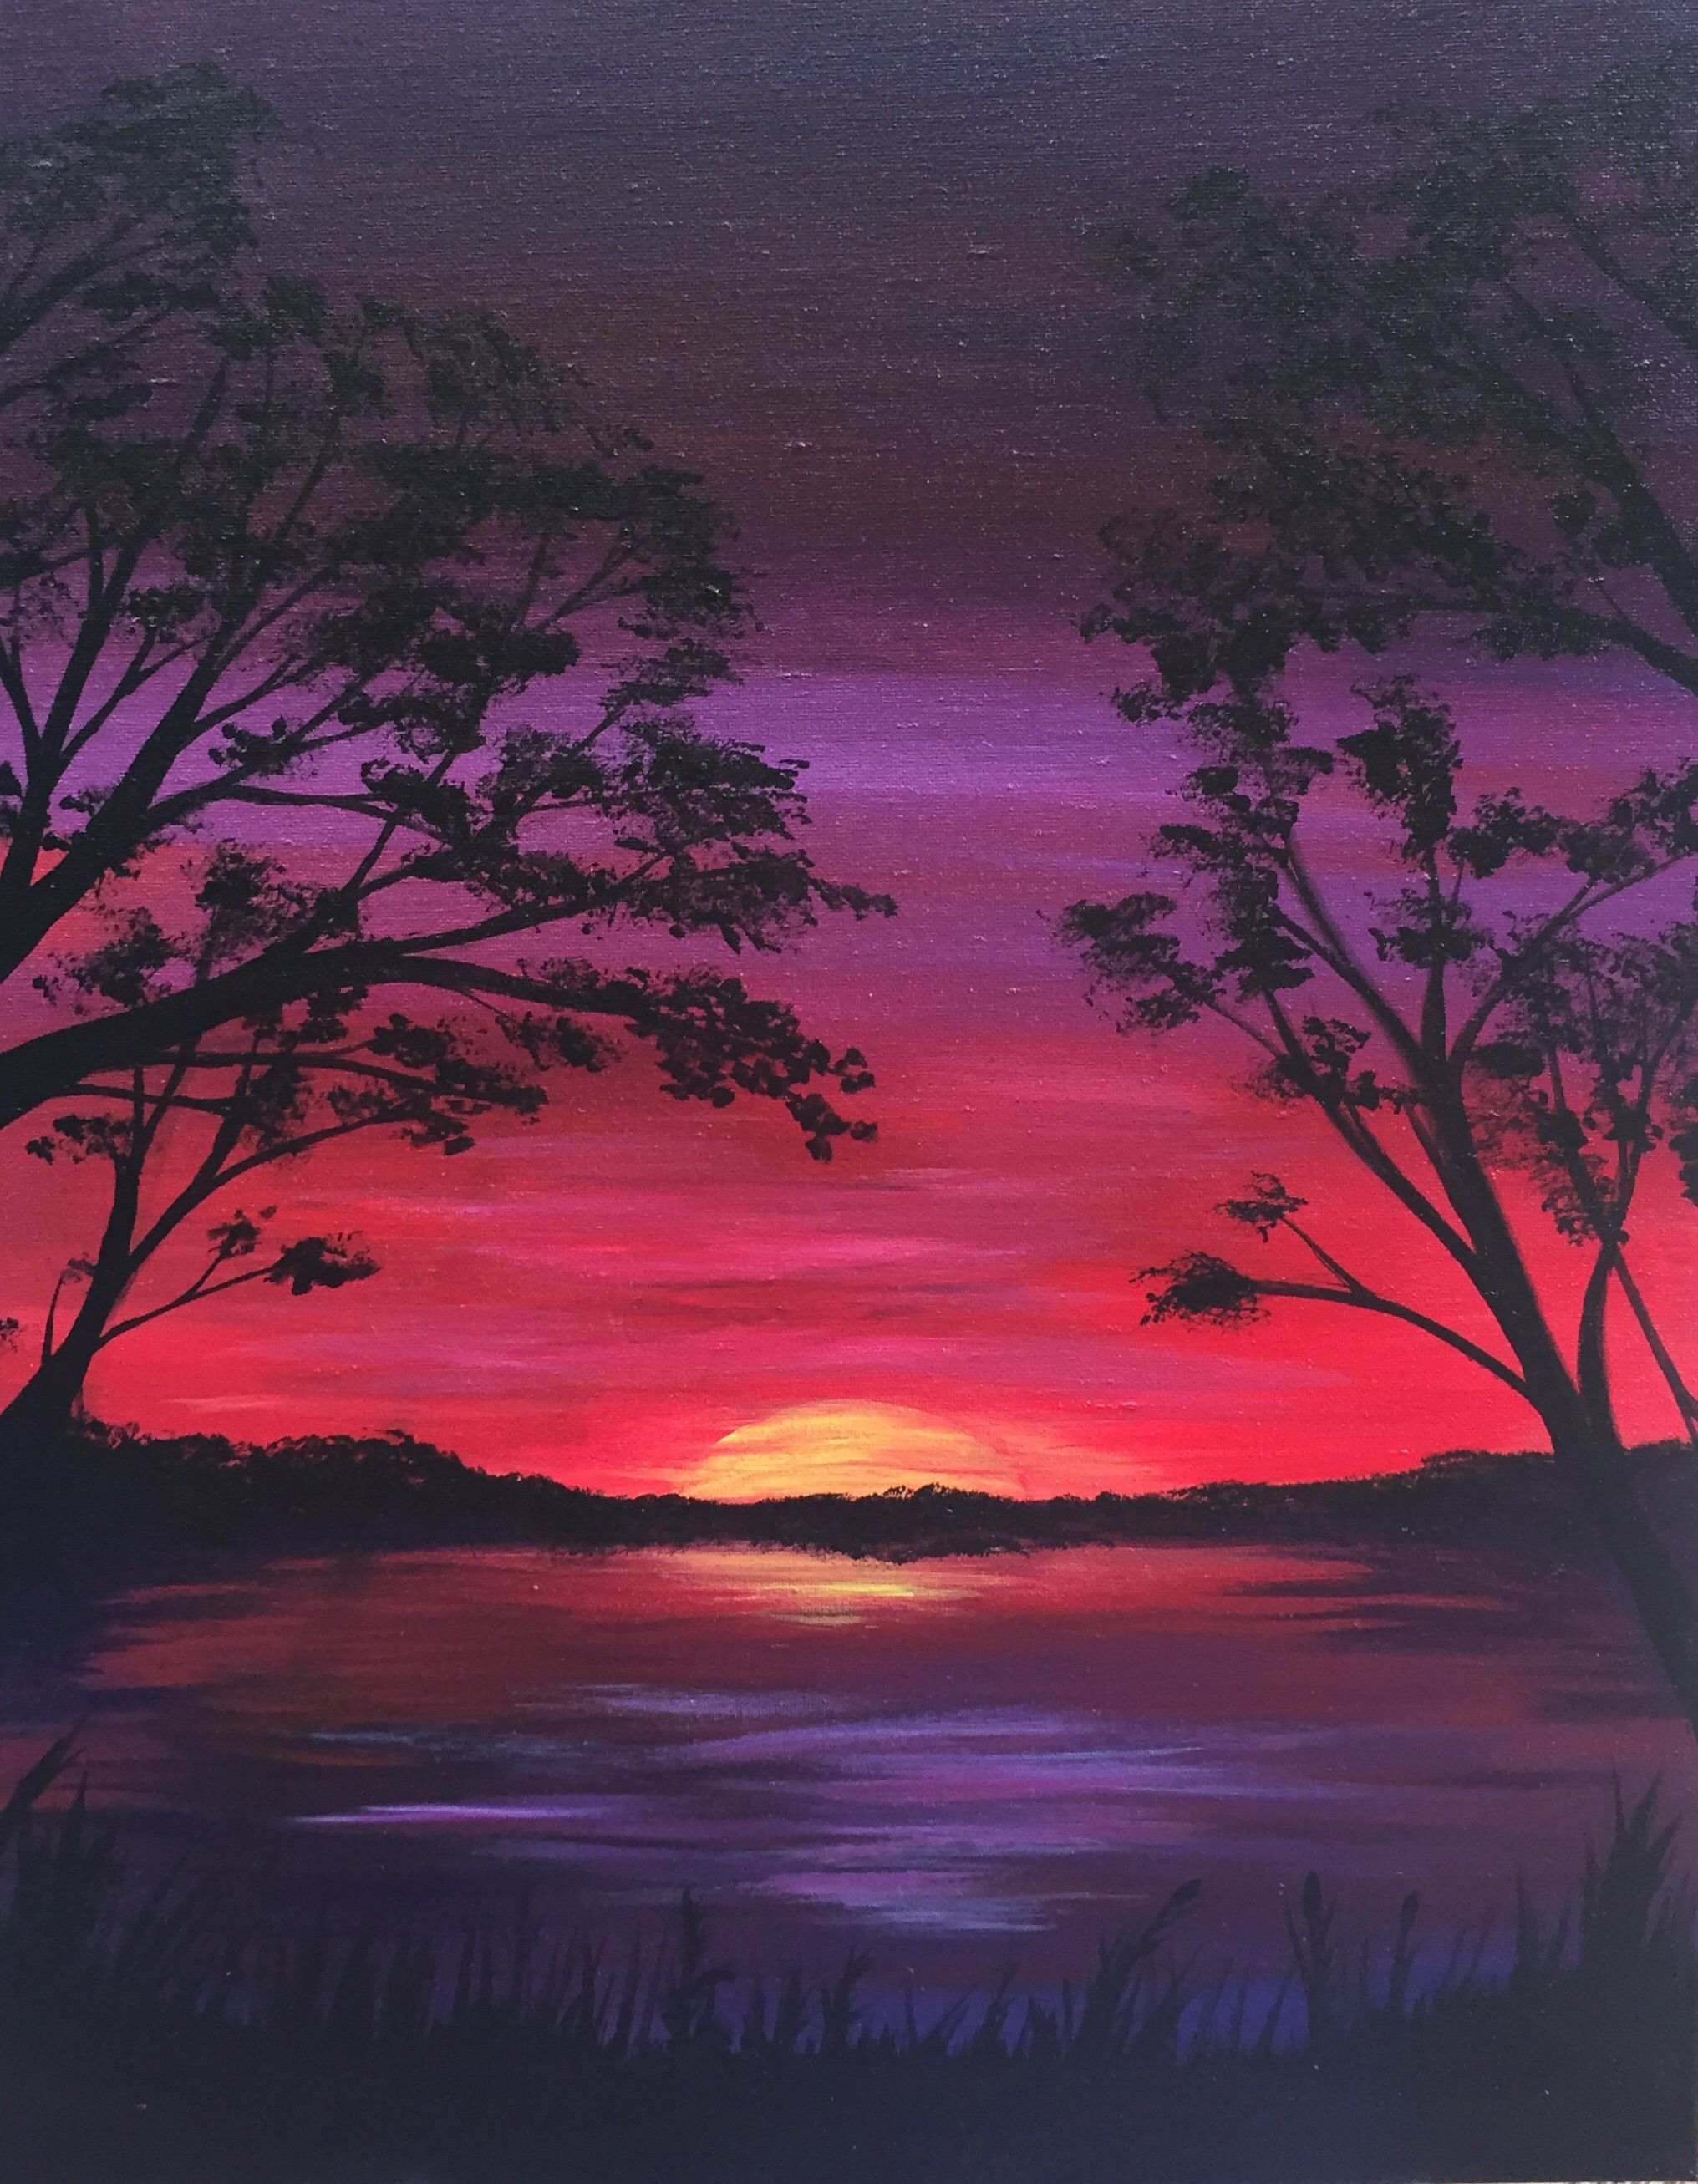 Lake At Sundown At Eli S On The Hill Paint Nite Events Easy Landscape Paintings Landscape Paintings Art